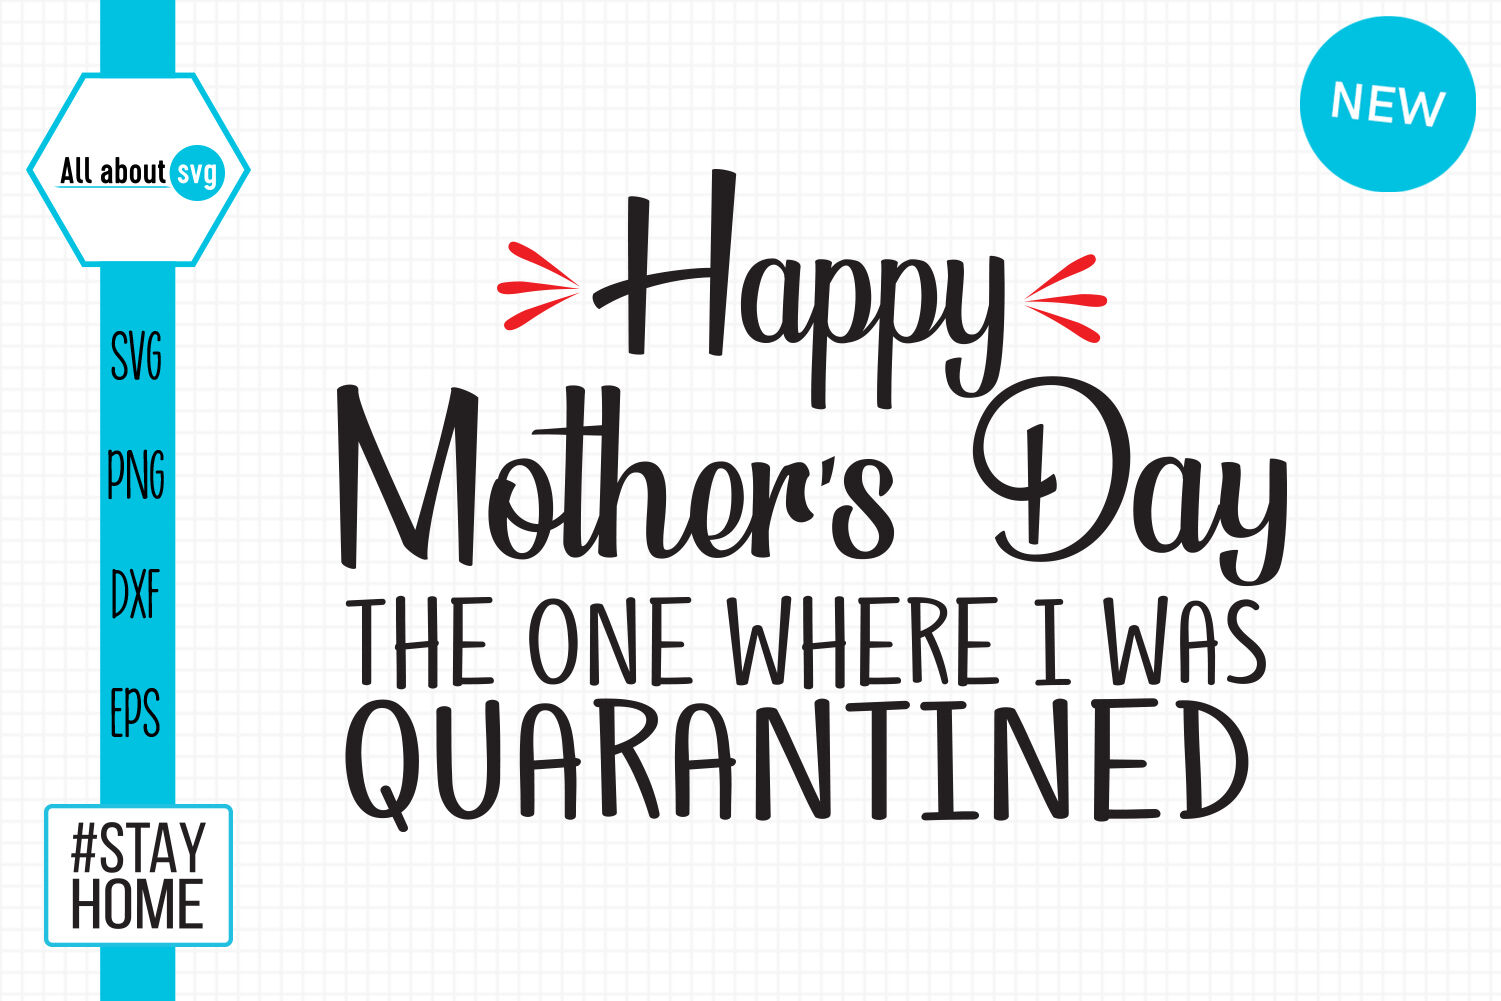 Happy Quarantined Mothers Day Svg By All About Svg Thehungryjpeg Com